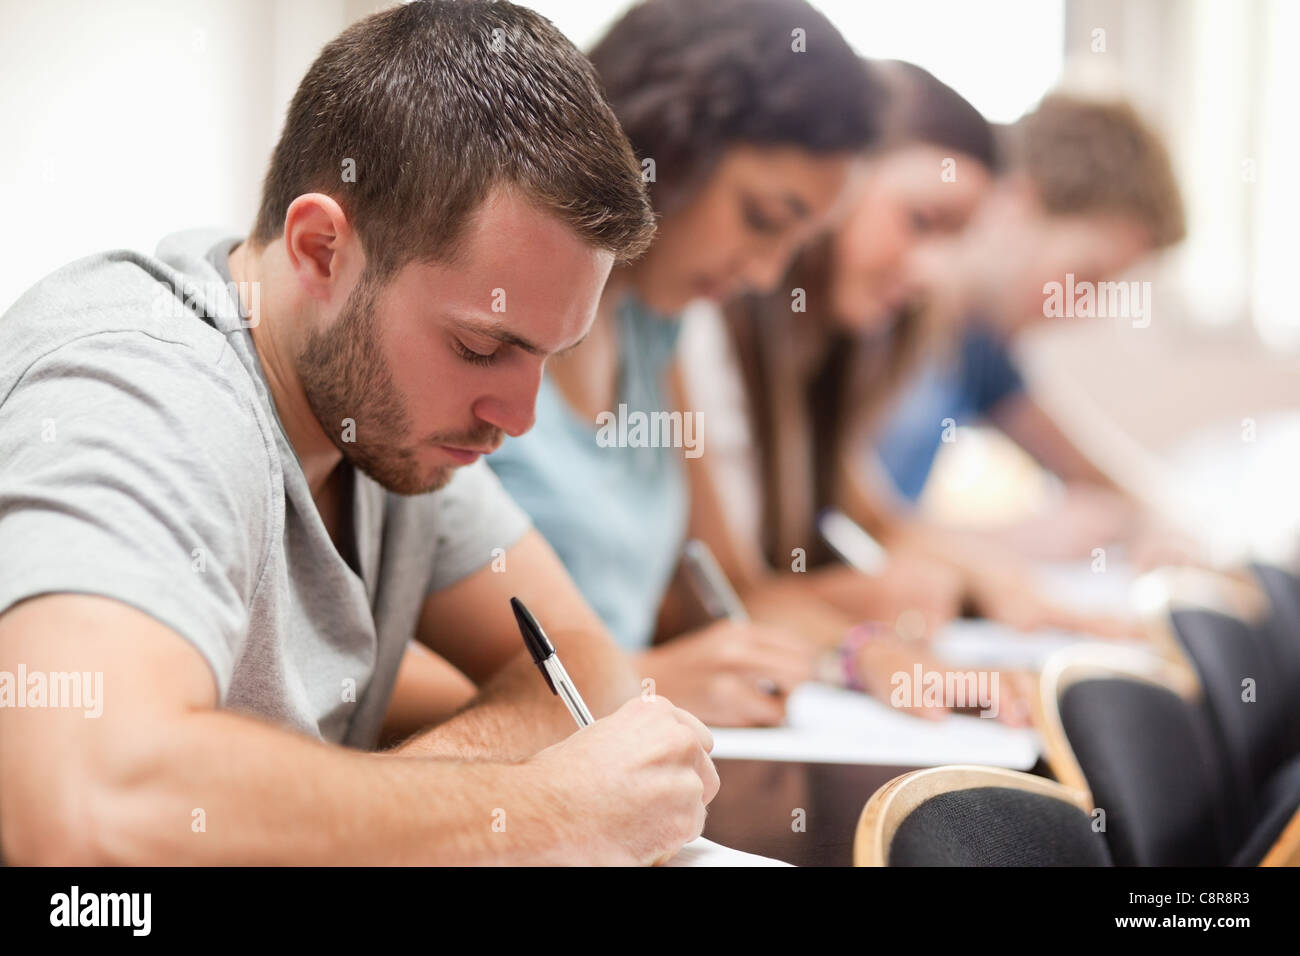 Serious students sitting for an examination - Stock Image